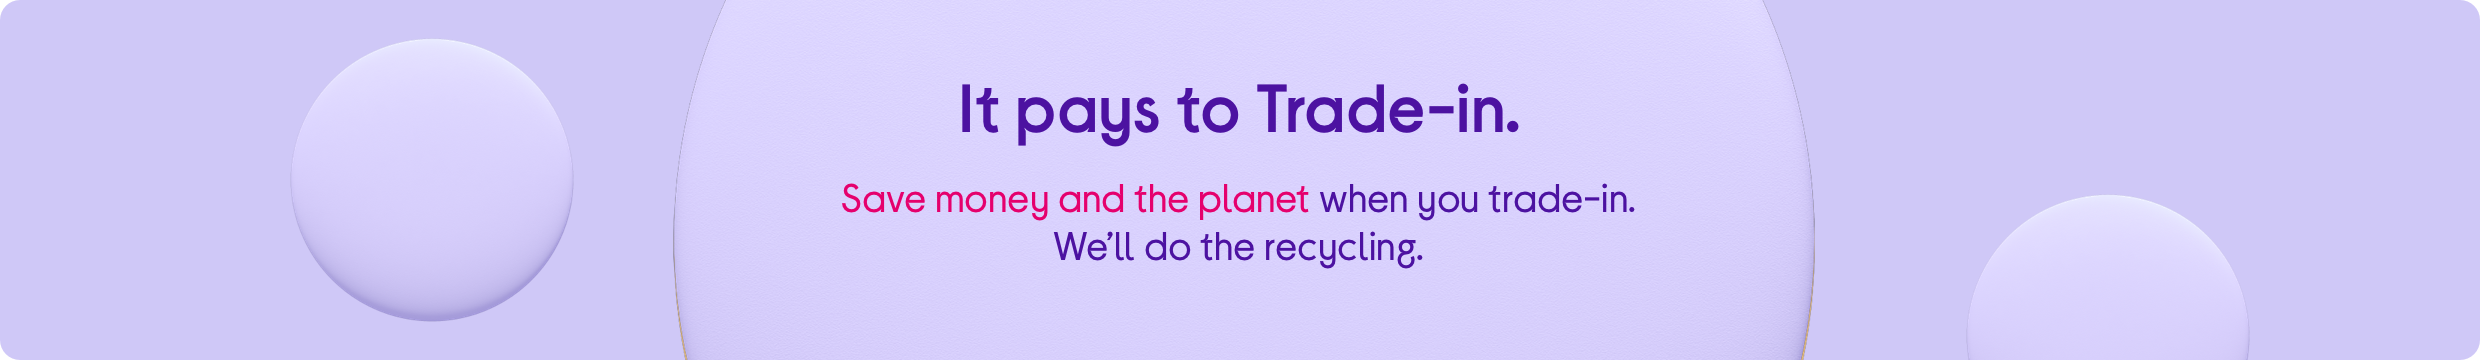 Trade in your old stuff and save on loads of amazing tech